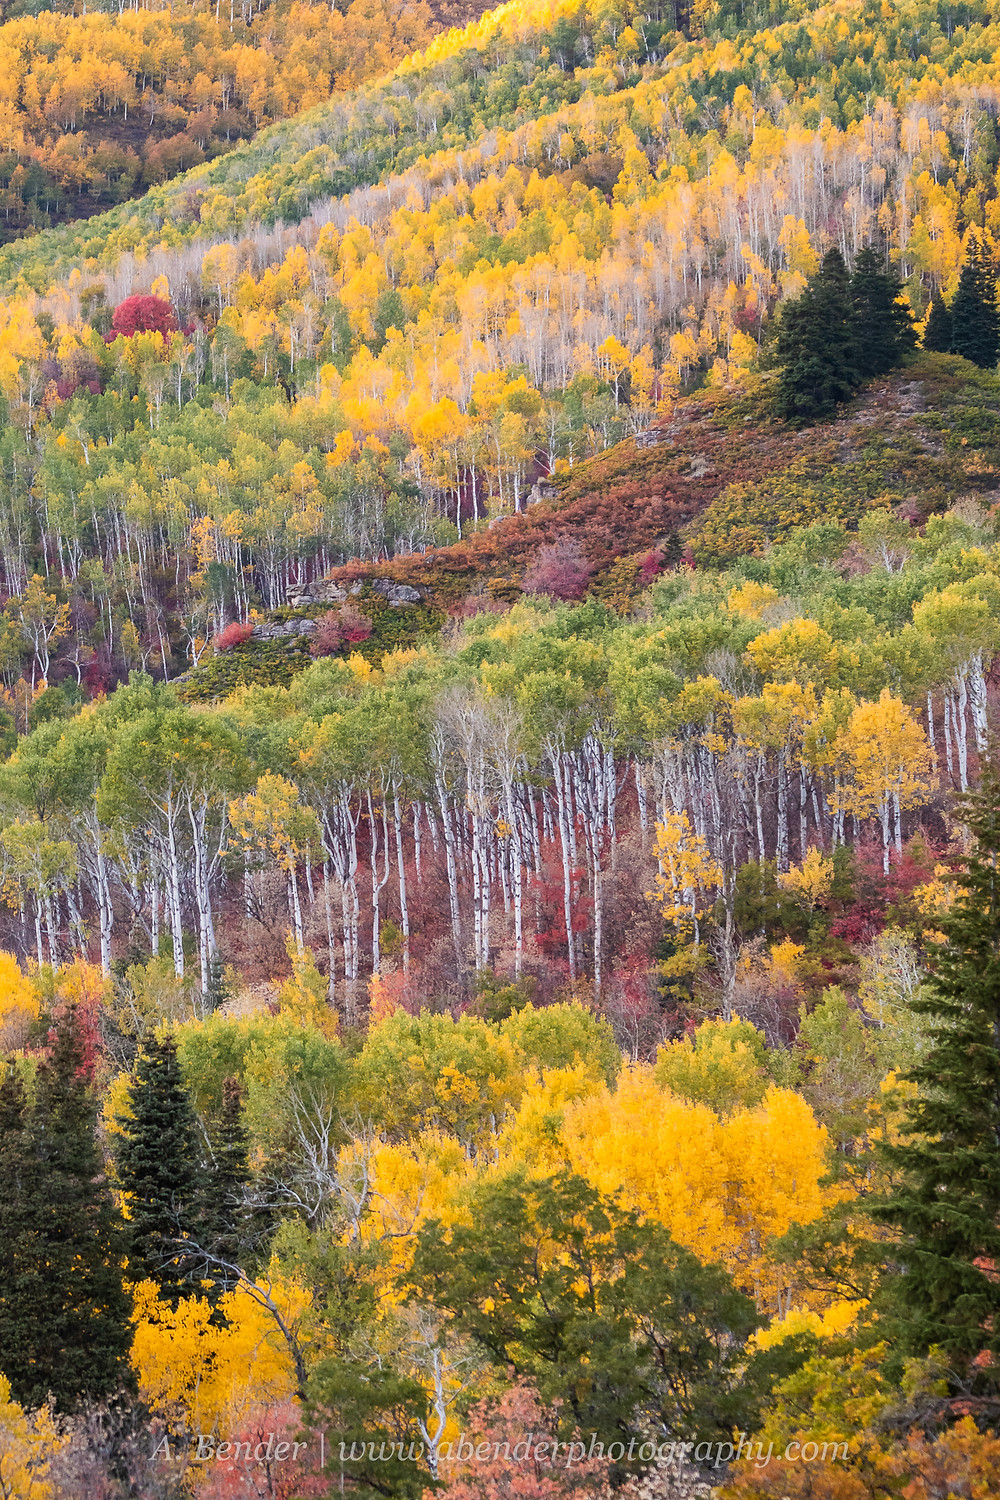 Layers of trees along the Wasatch Mountain ridges decked in fall colors from green to yellow and red, Utah 2021 autumn | A Bender Photography LLC